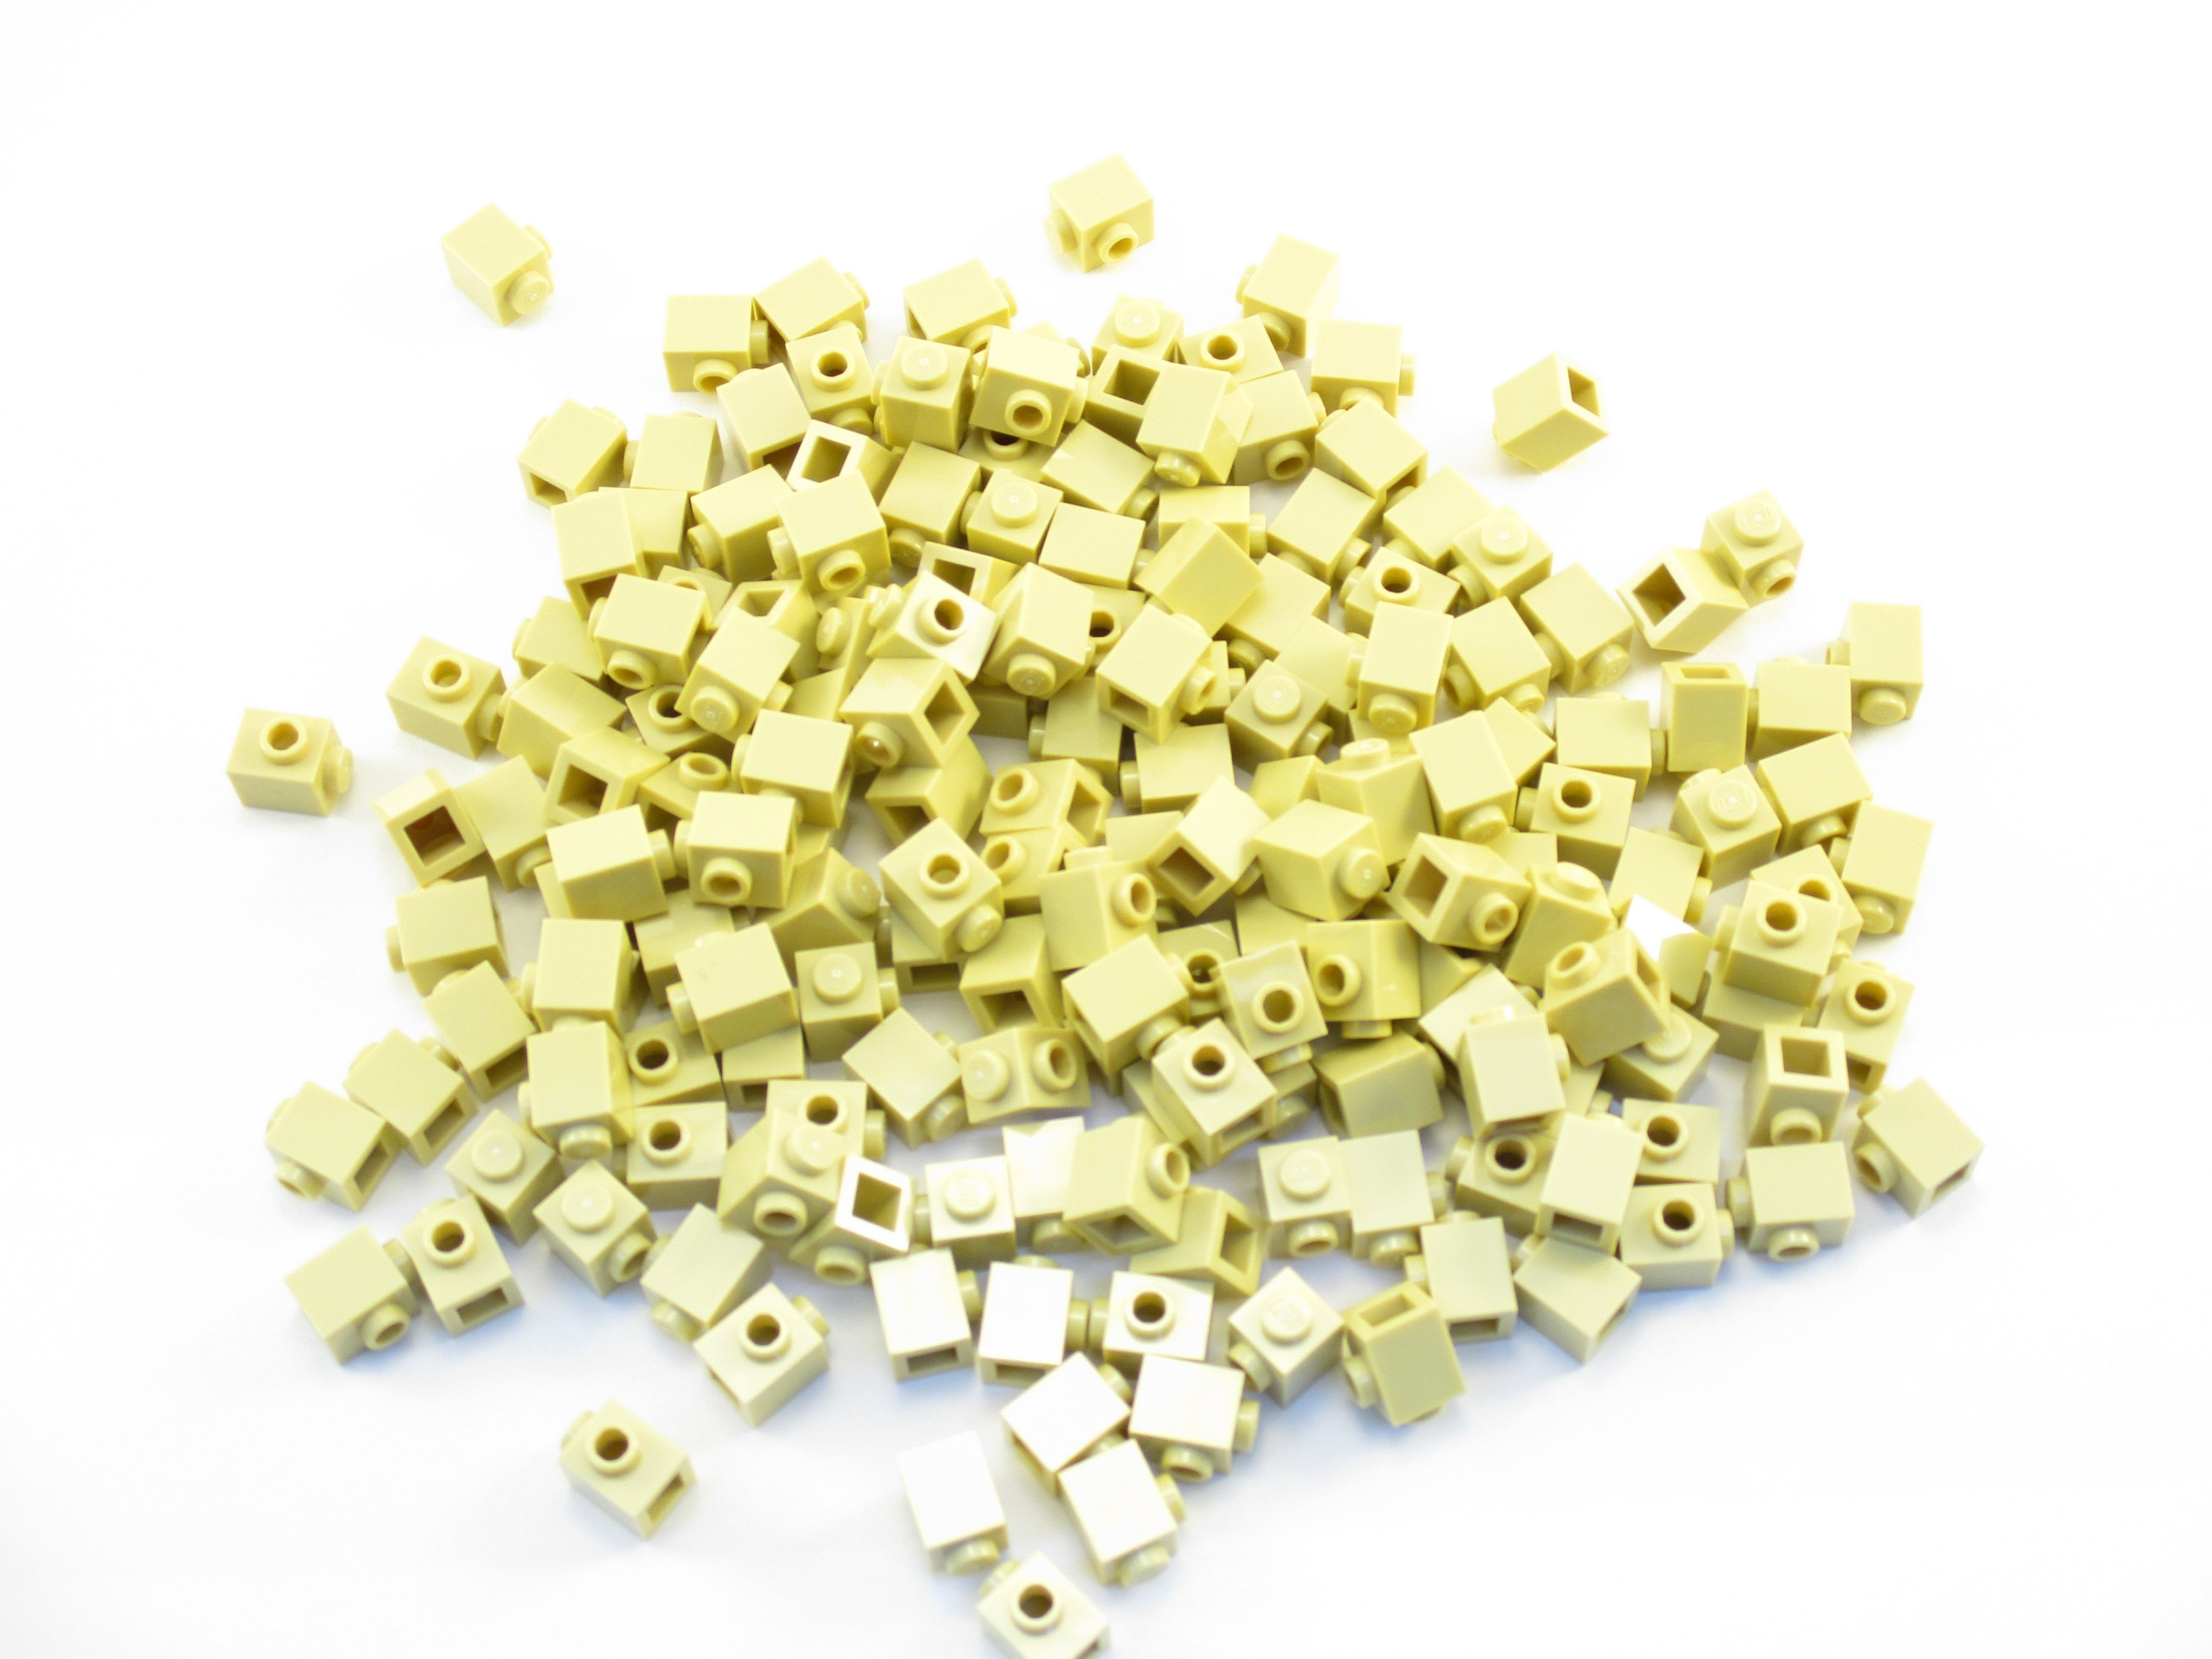 LEGO Yellow Brick Modified 1x1 with Stud 1 Side Lot of 100 Parts Pieces 87087